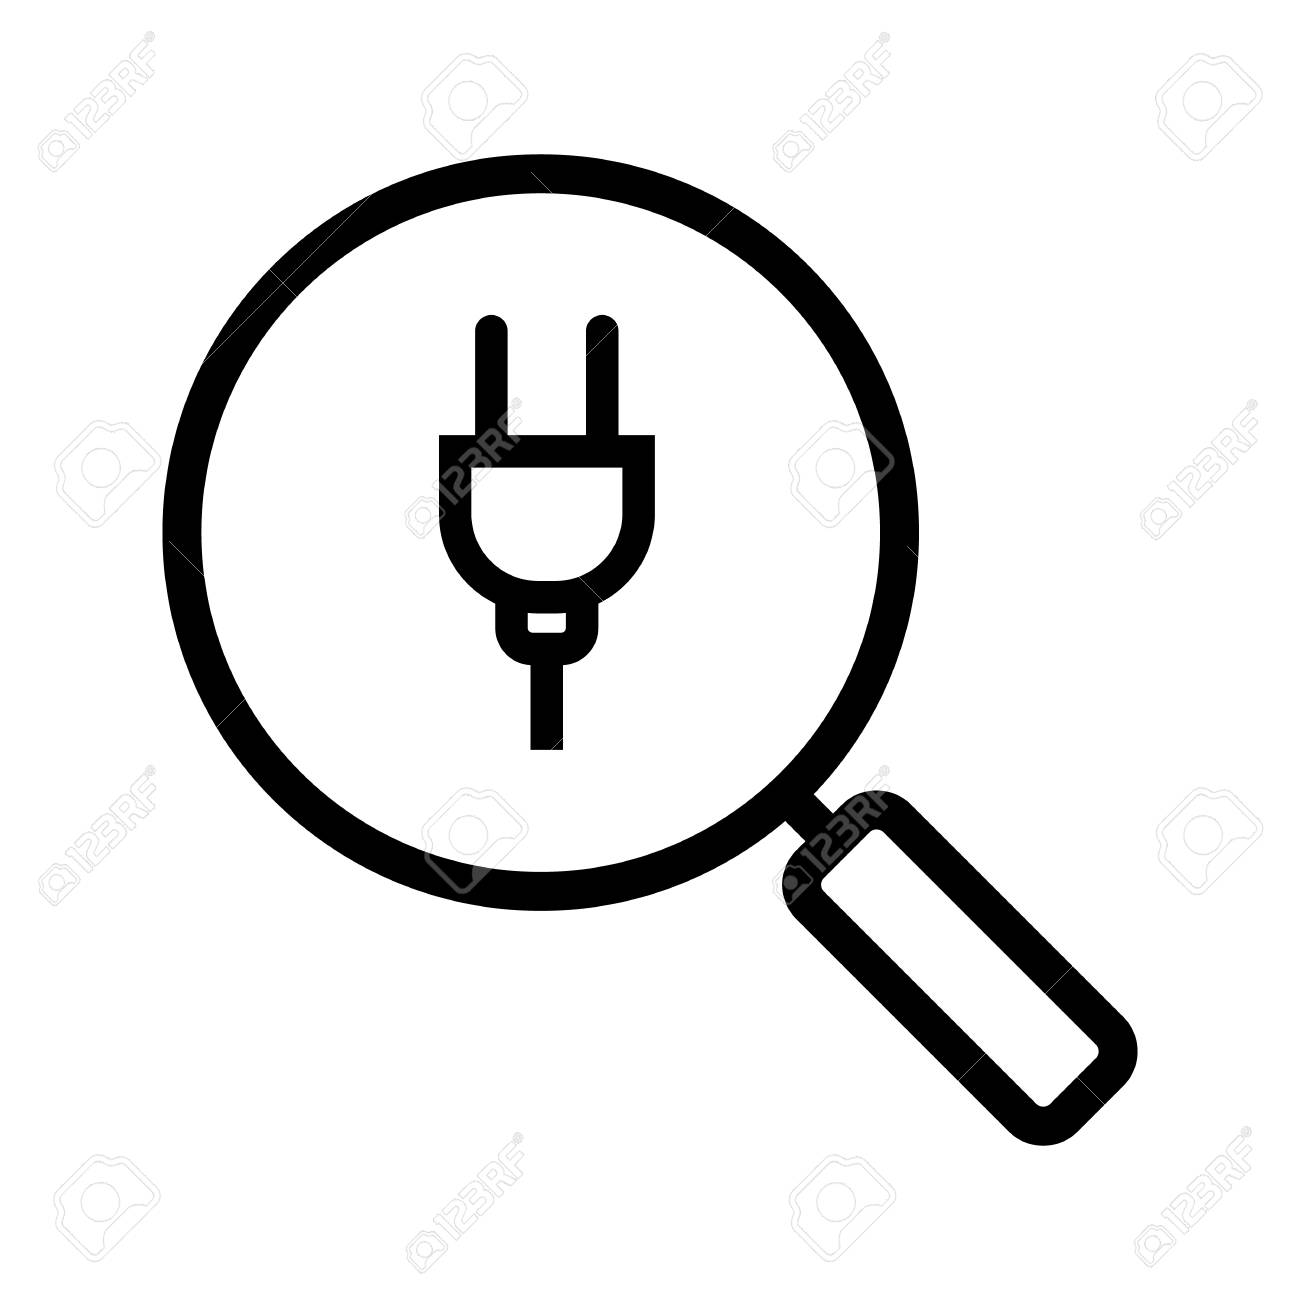 hight resolution of magnifying glass with plug linear icon thin line illustration search contour symbol vector